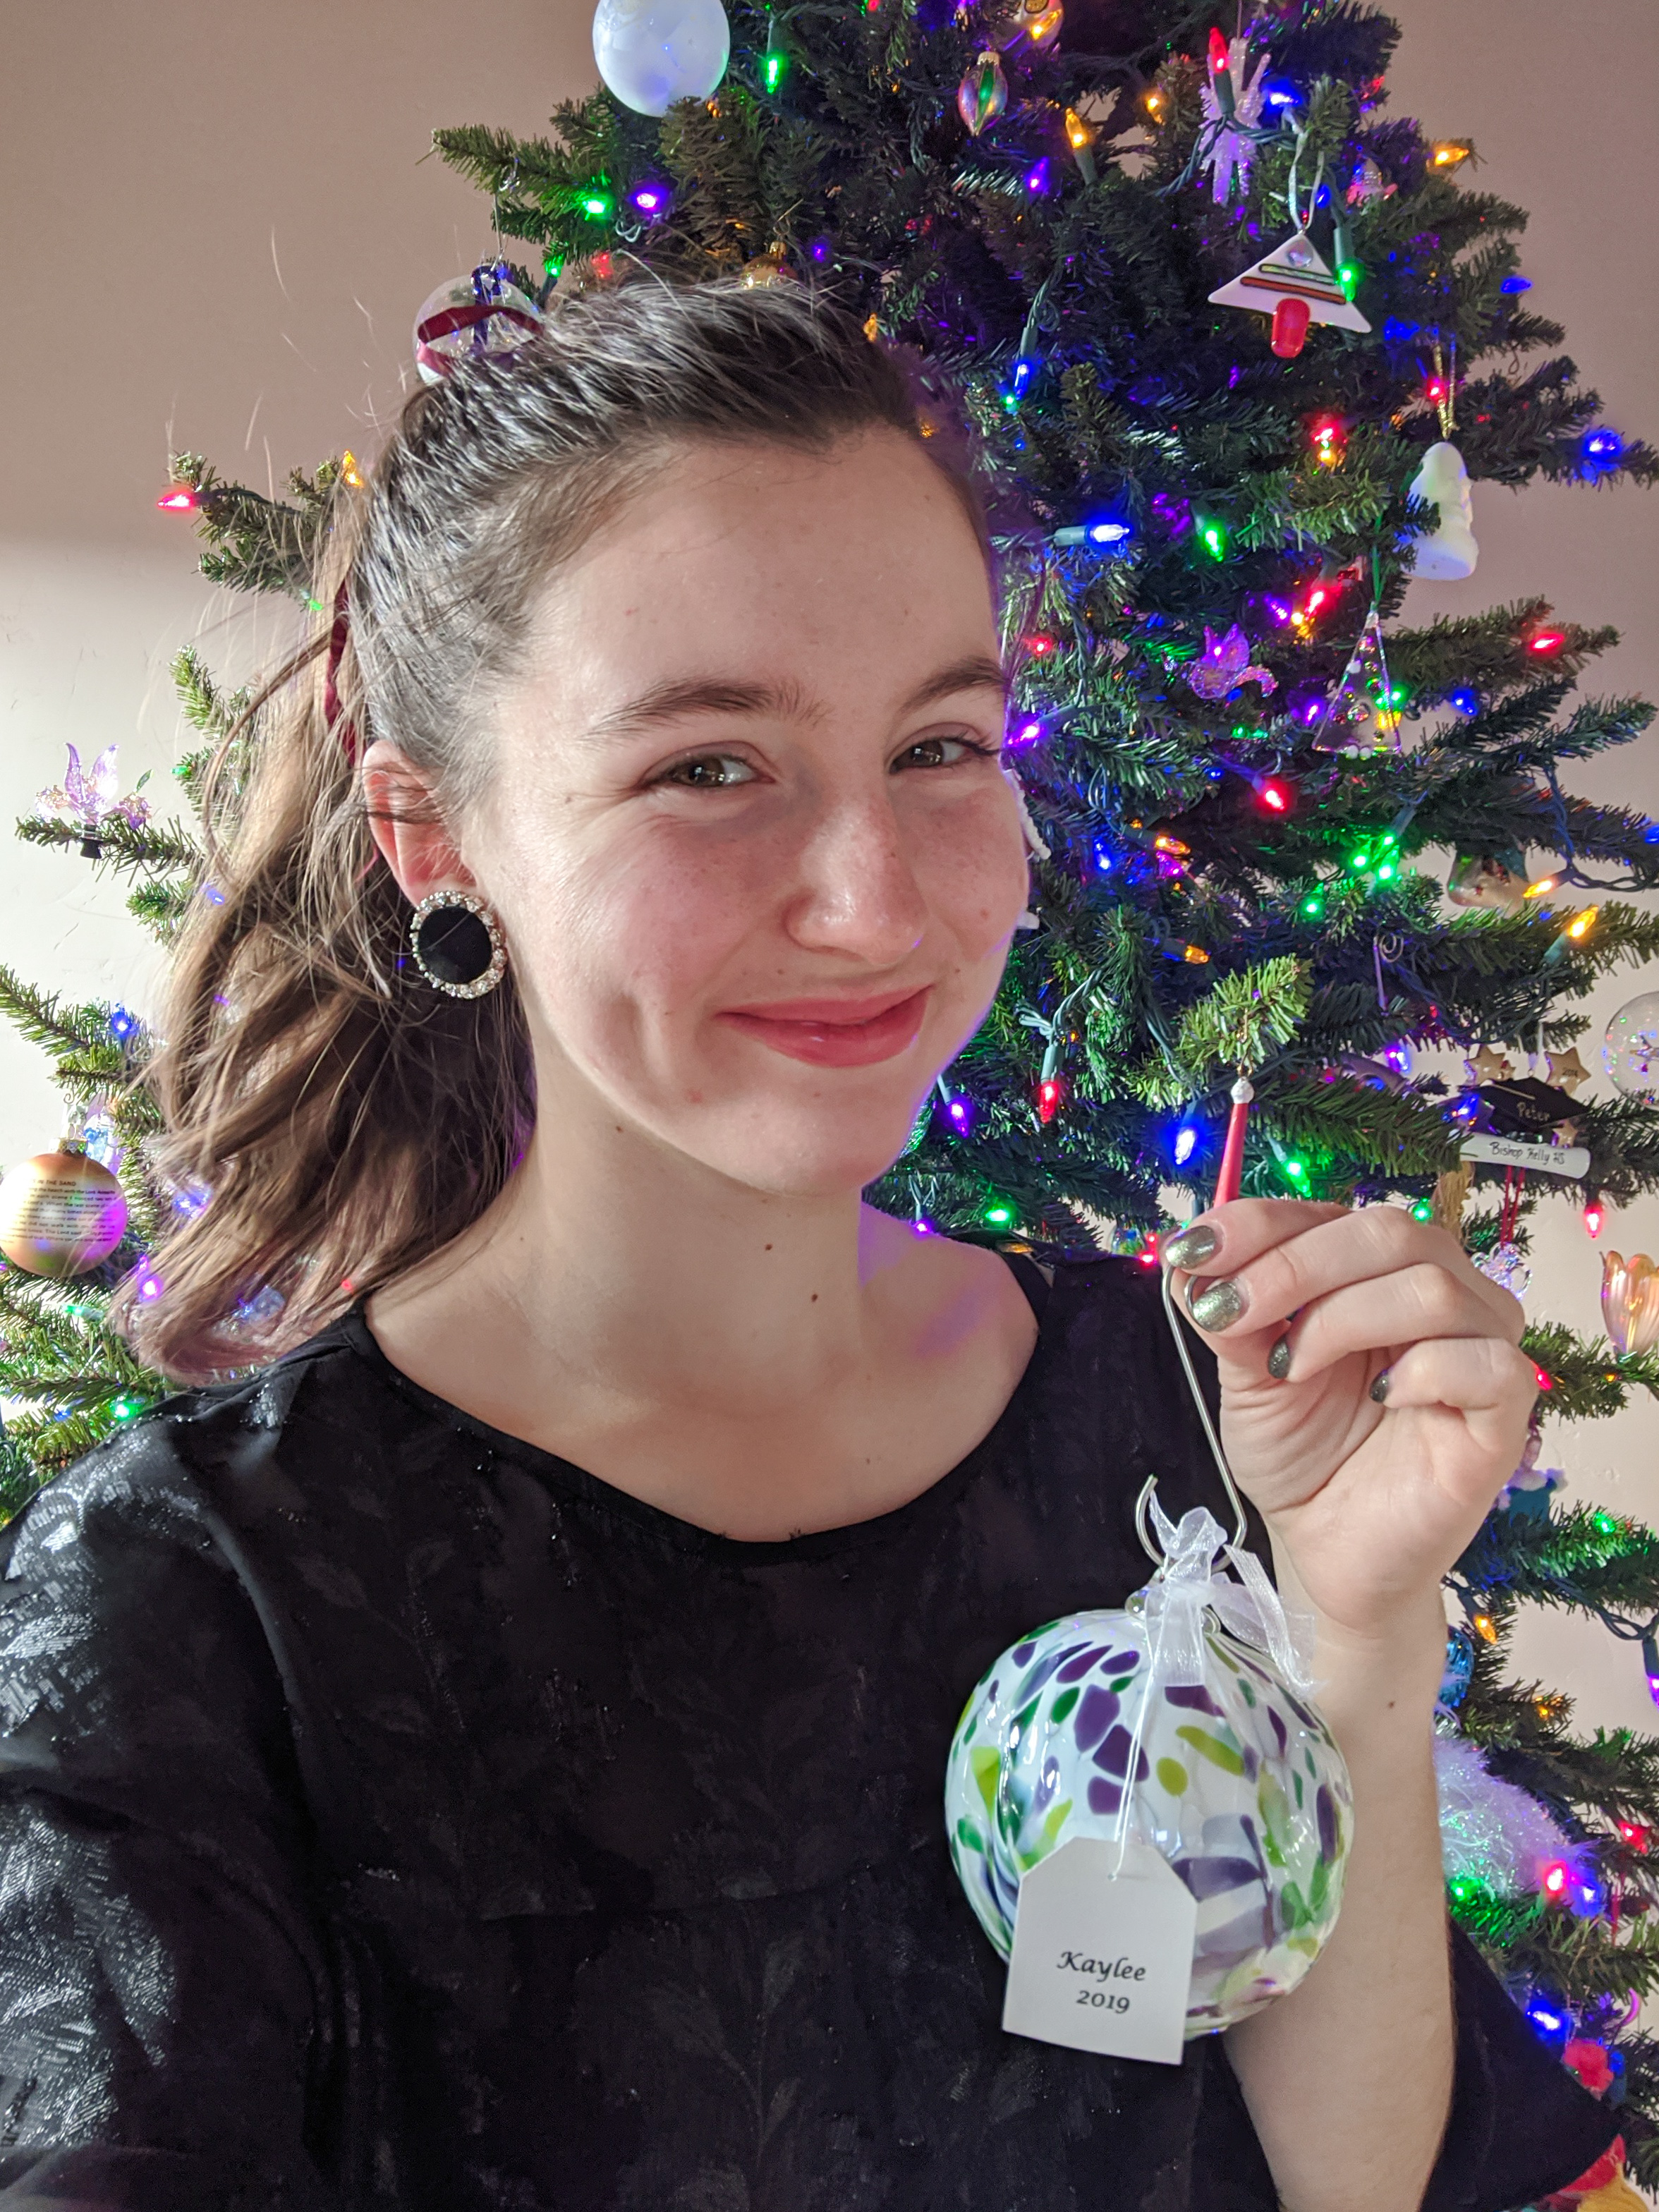 Christmas presents, Christmas tree, ornaments, childhood cancer